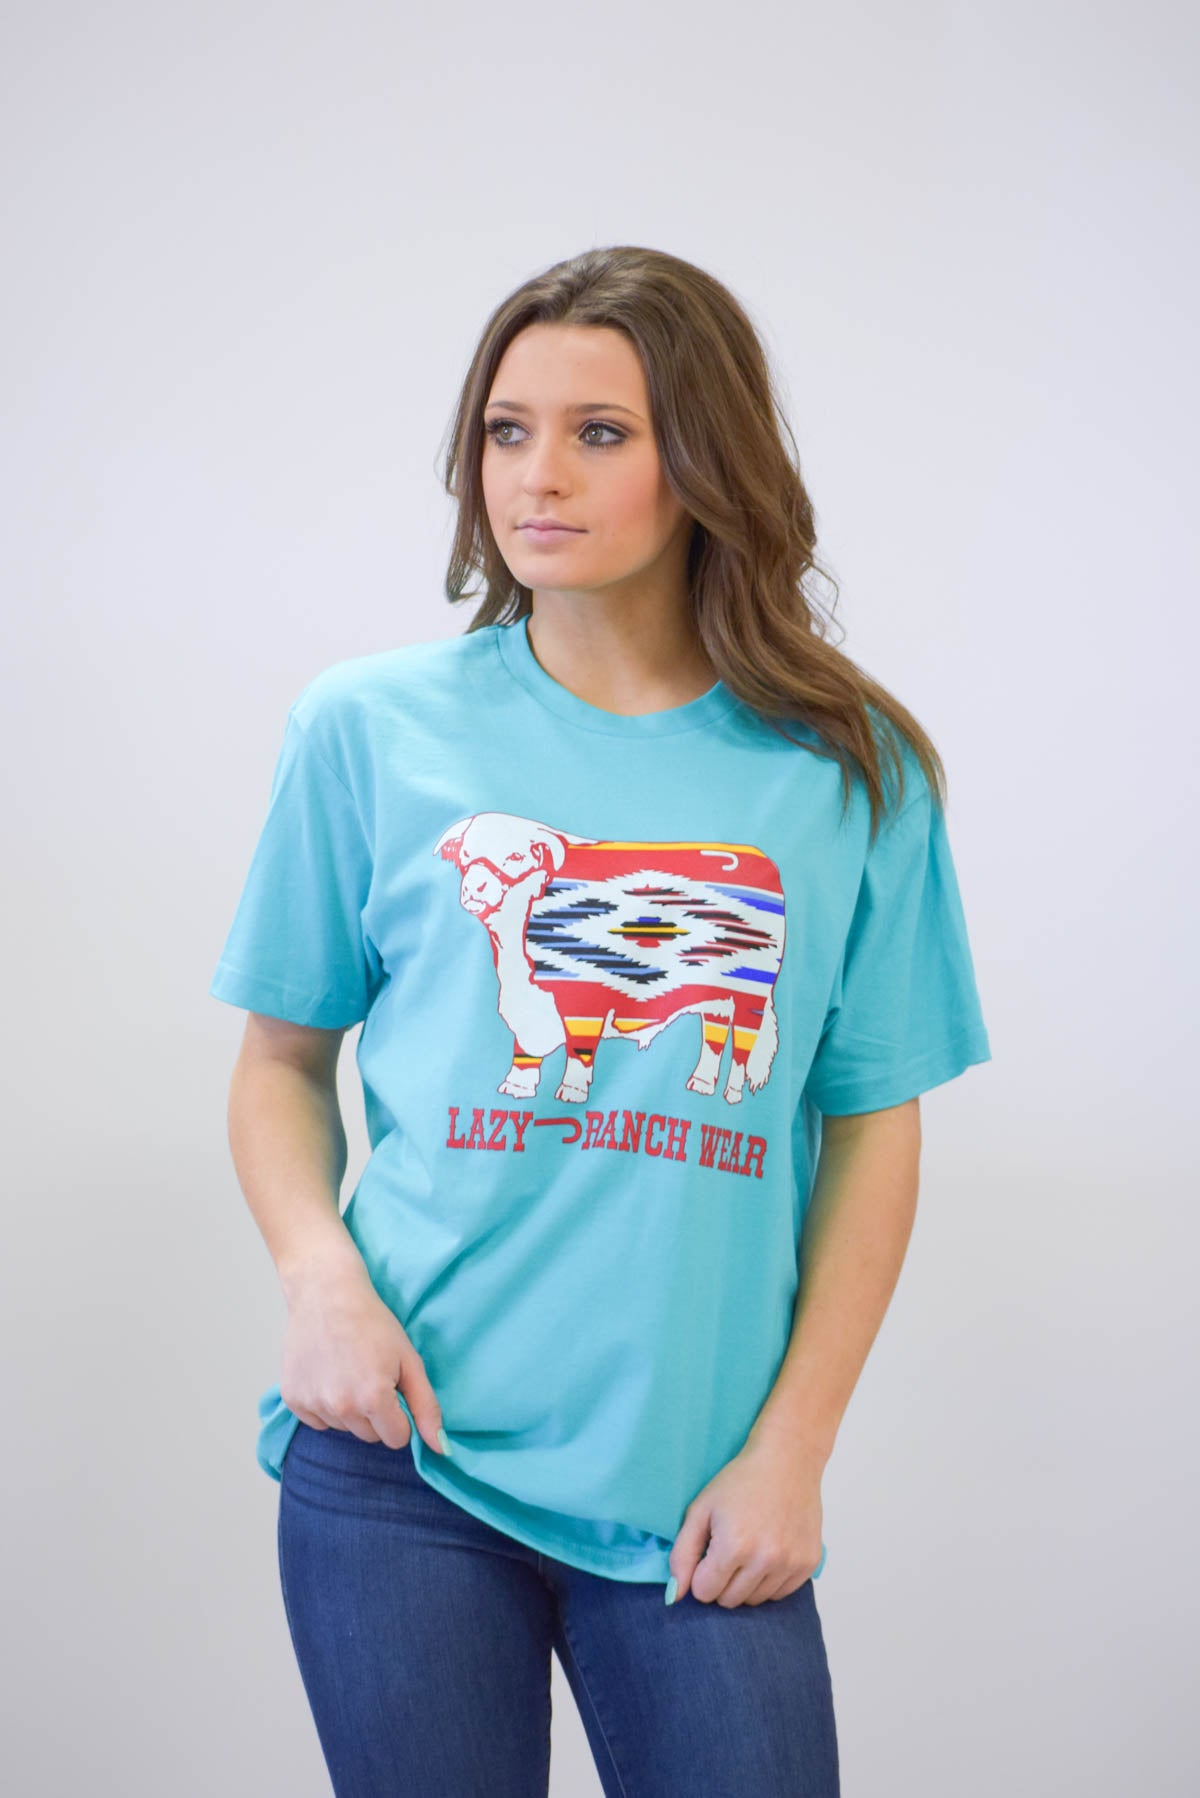 Lazy J Ranch Wear Serape Hereford Short Sleeve T-Shirt - Turquoise